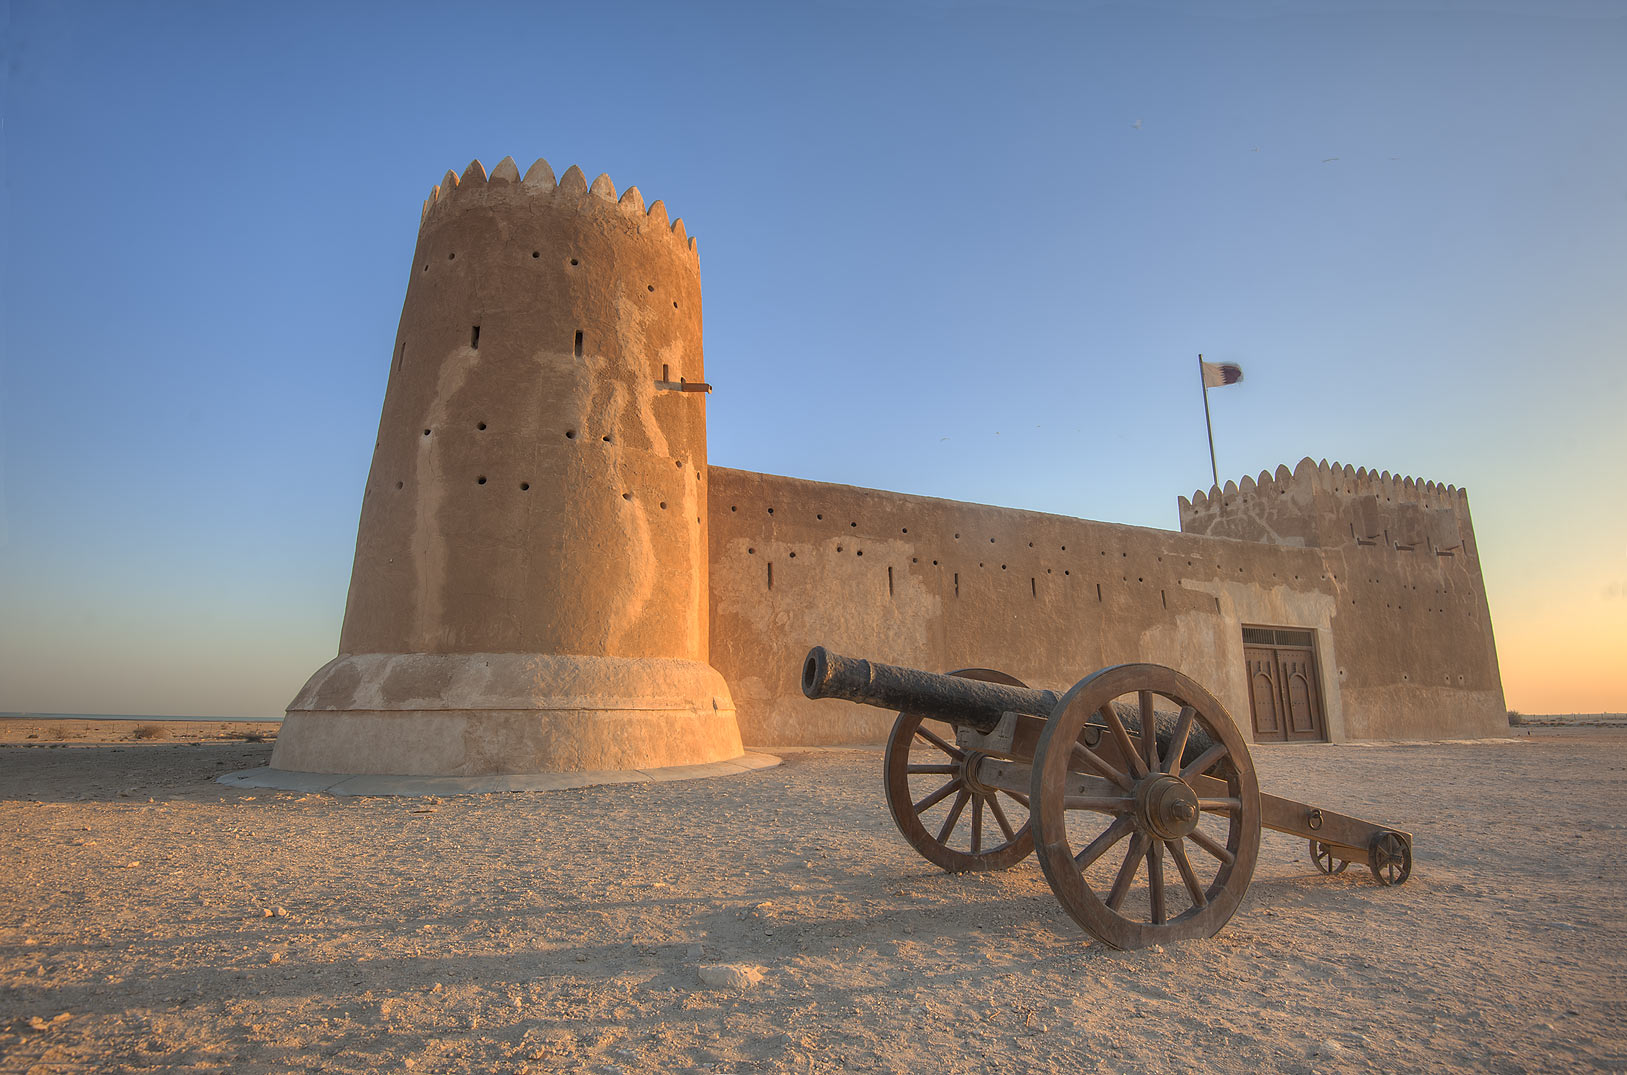 Reconstructed Zubara Fort on northwest coast. Qatar